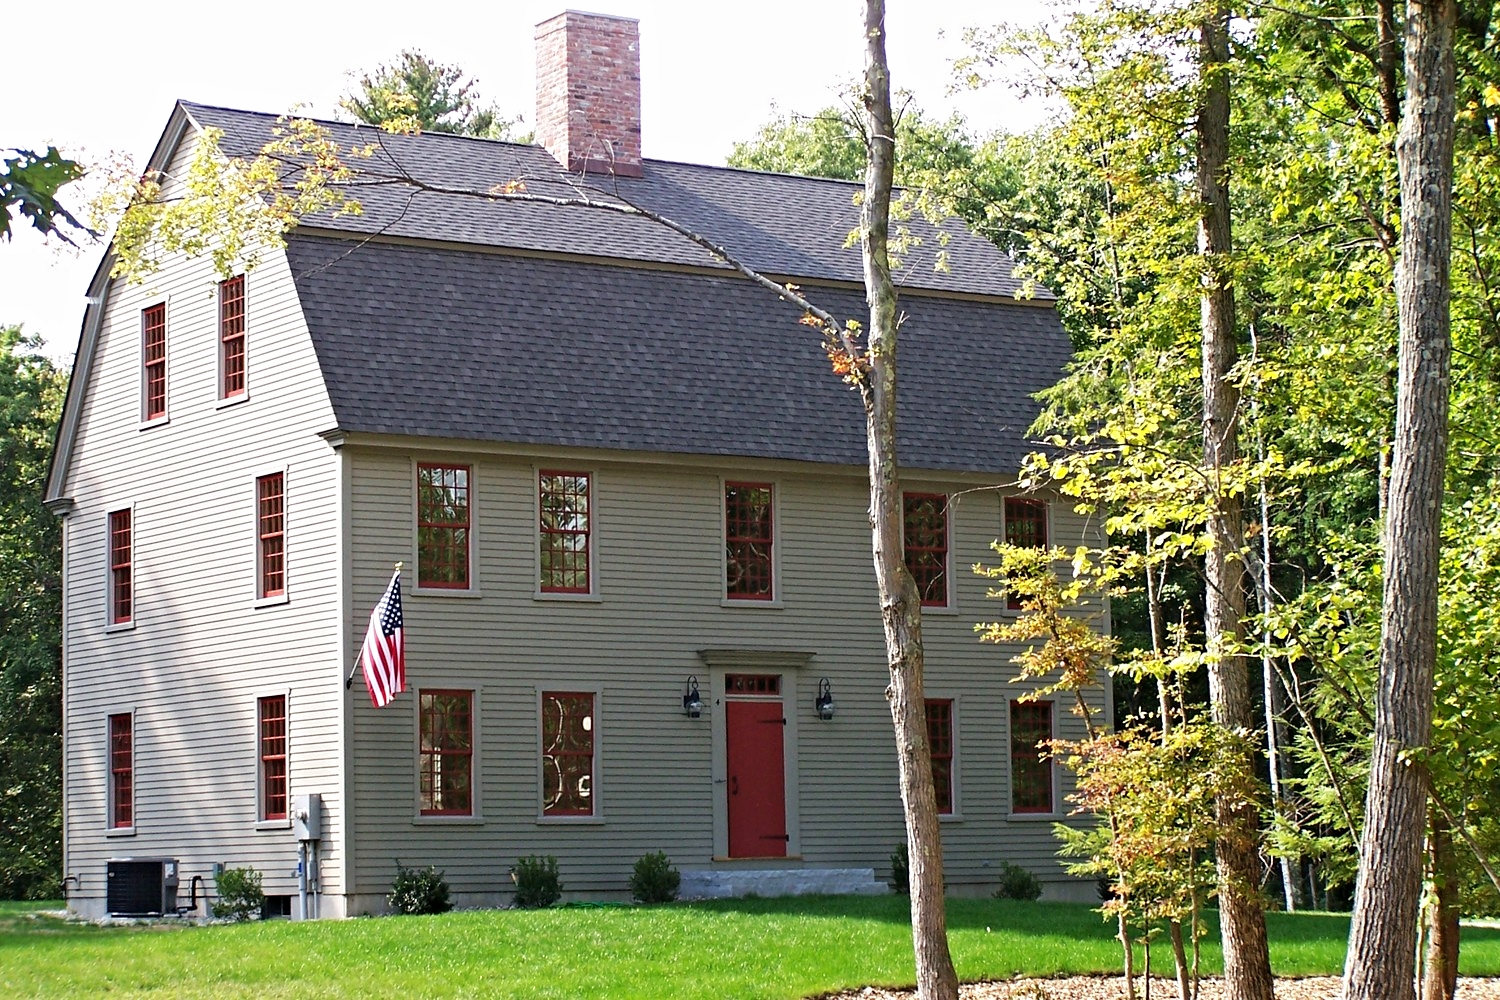 New England Gambrel House Designs on residential house designs, anderson house designs, off the grid house designs, mansard house designs, shed house designs, log house designs, eco house designs, garage house designs, roof house designs, monitor house designs, 2015 house designs, cheap house designs, gable house designs, mcpe house designs, hall house designs, traditional house designs, attic house designs, 2nd floor house designs, house house designs, flat house designs,